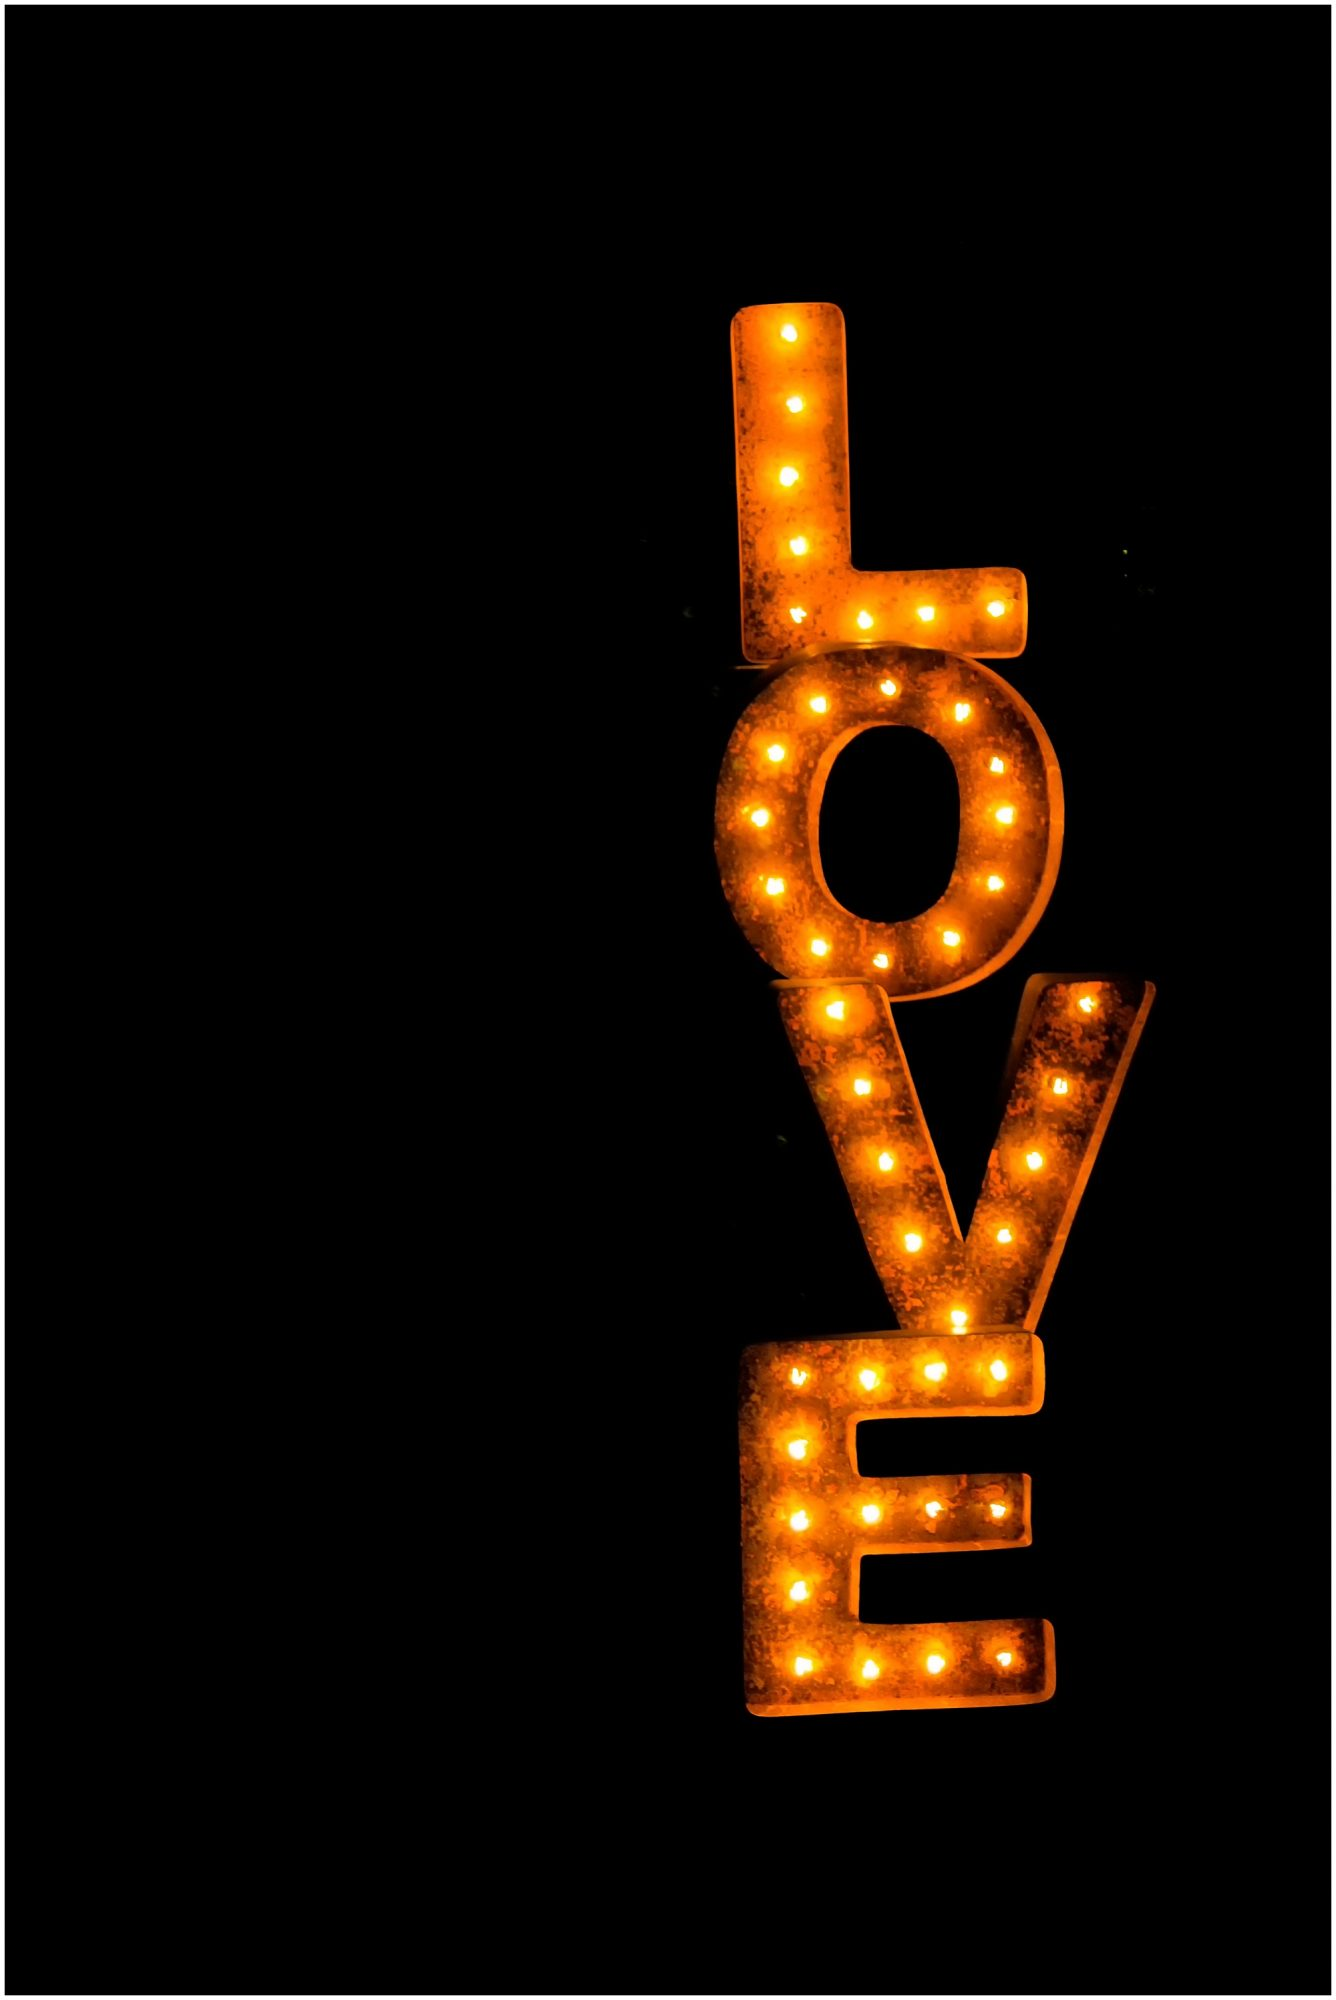 Marquee lights love word lit up in the dark.